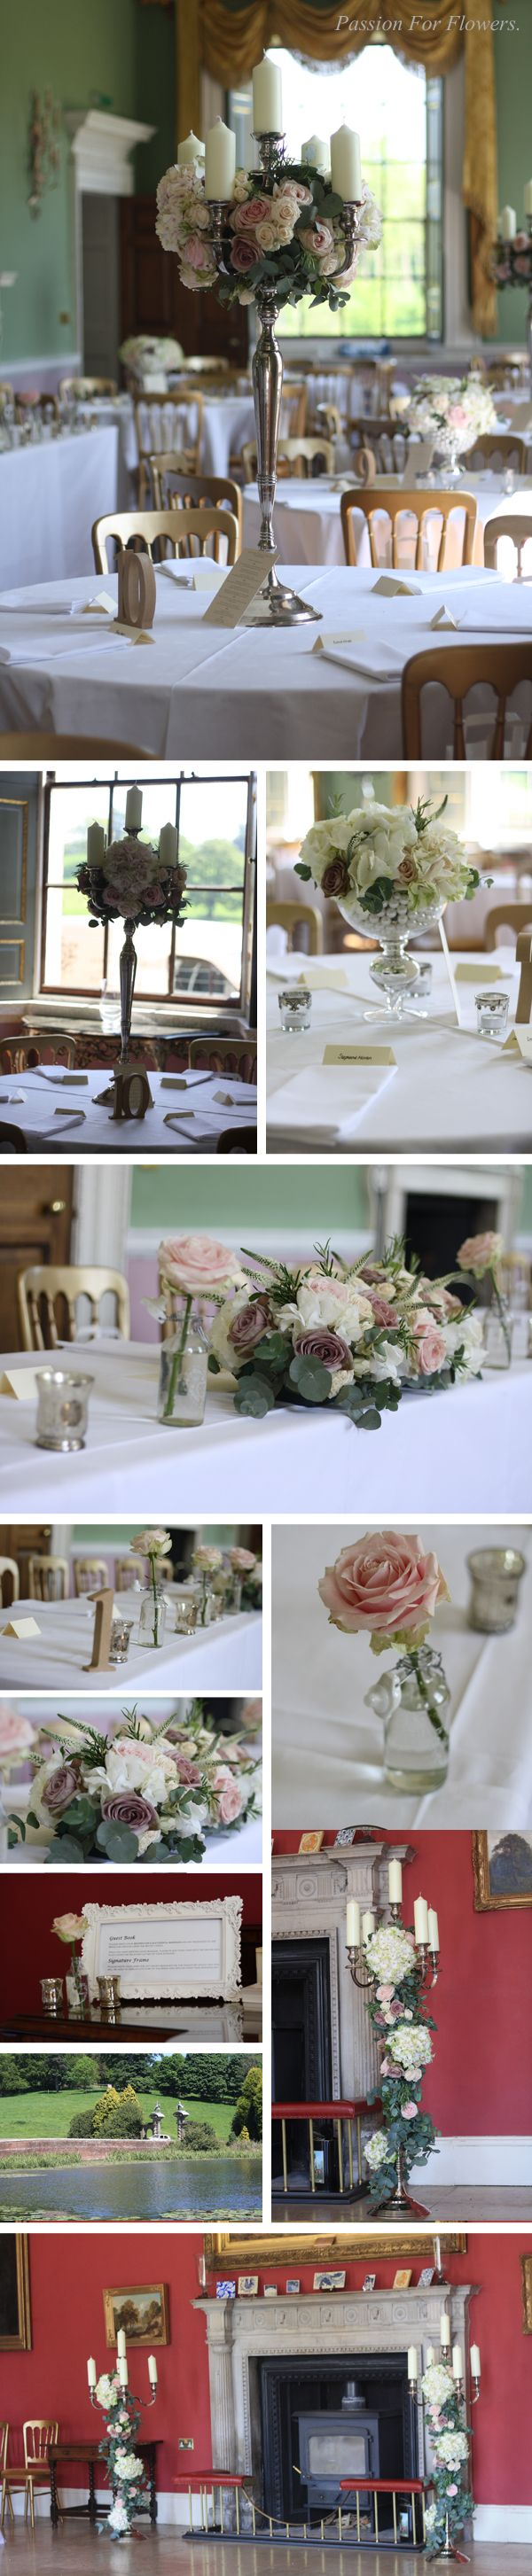 Wedding Flowers At Staunton Harold By Passionforflowers